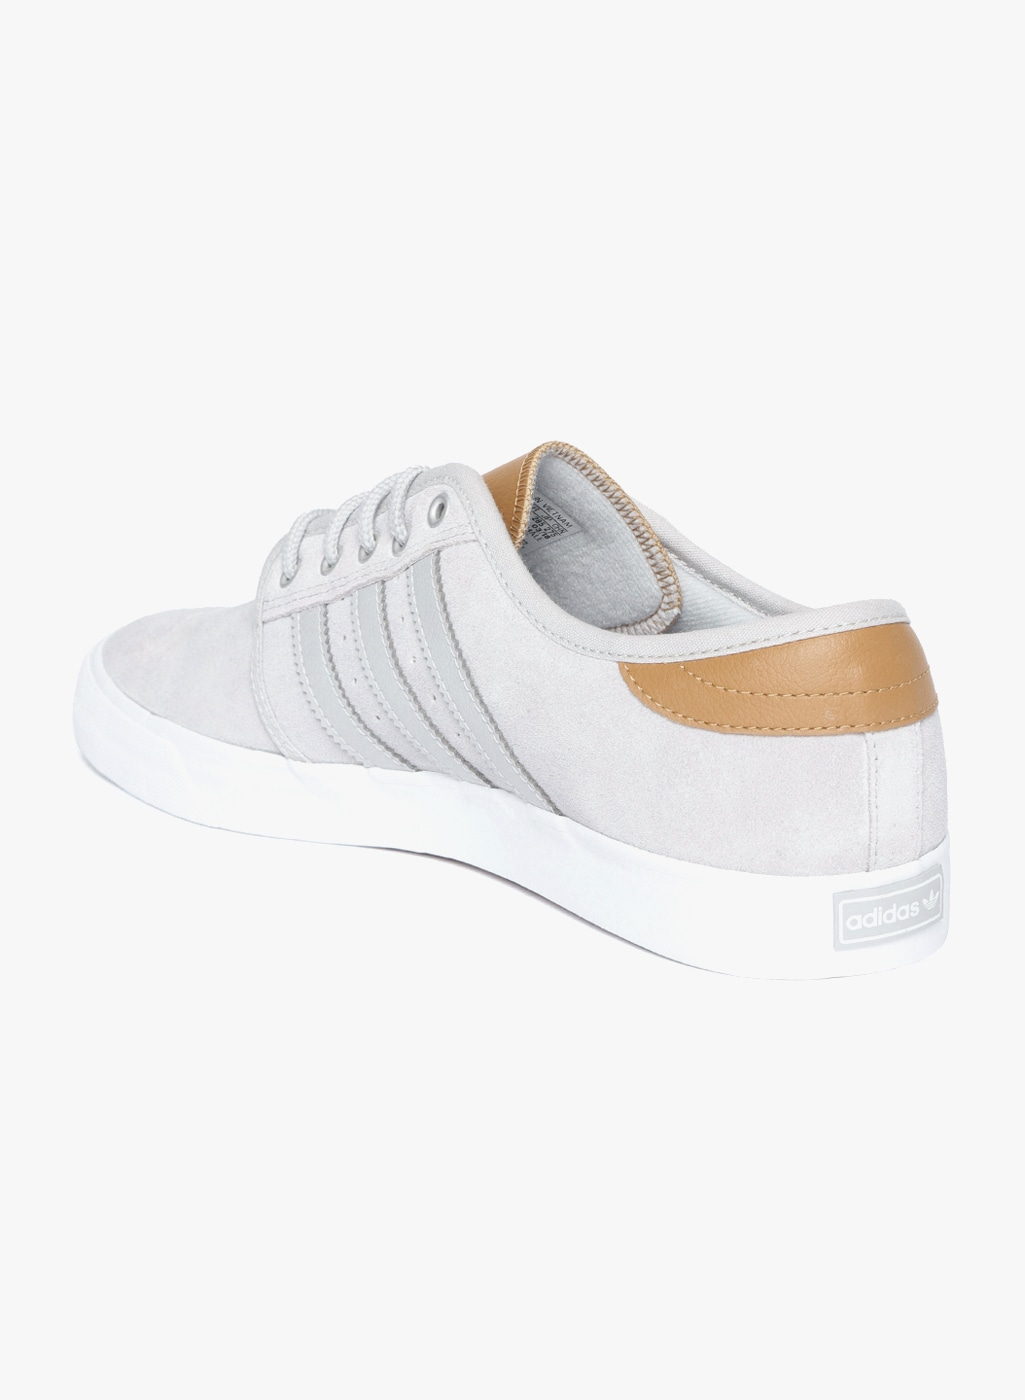 Adidas Originals - Buy Adidas Originals online in India - Jabong 7d3e6dcf8